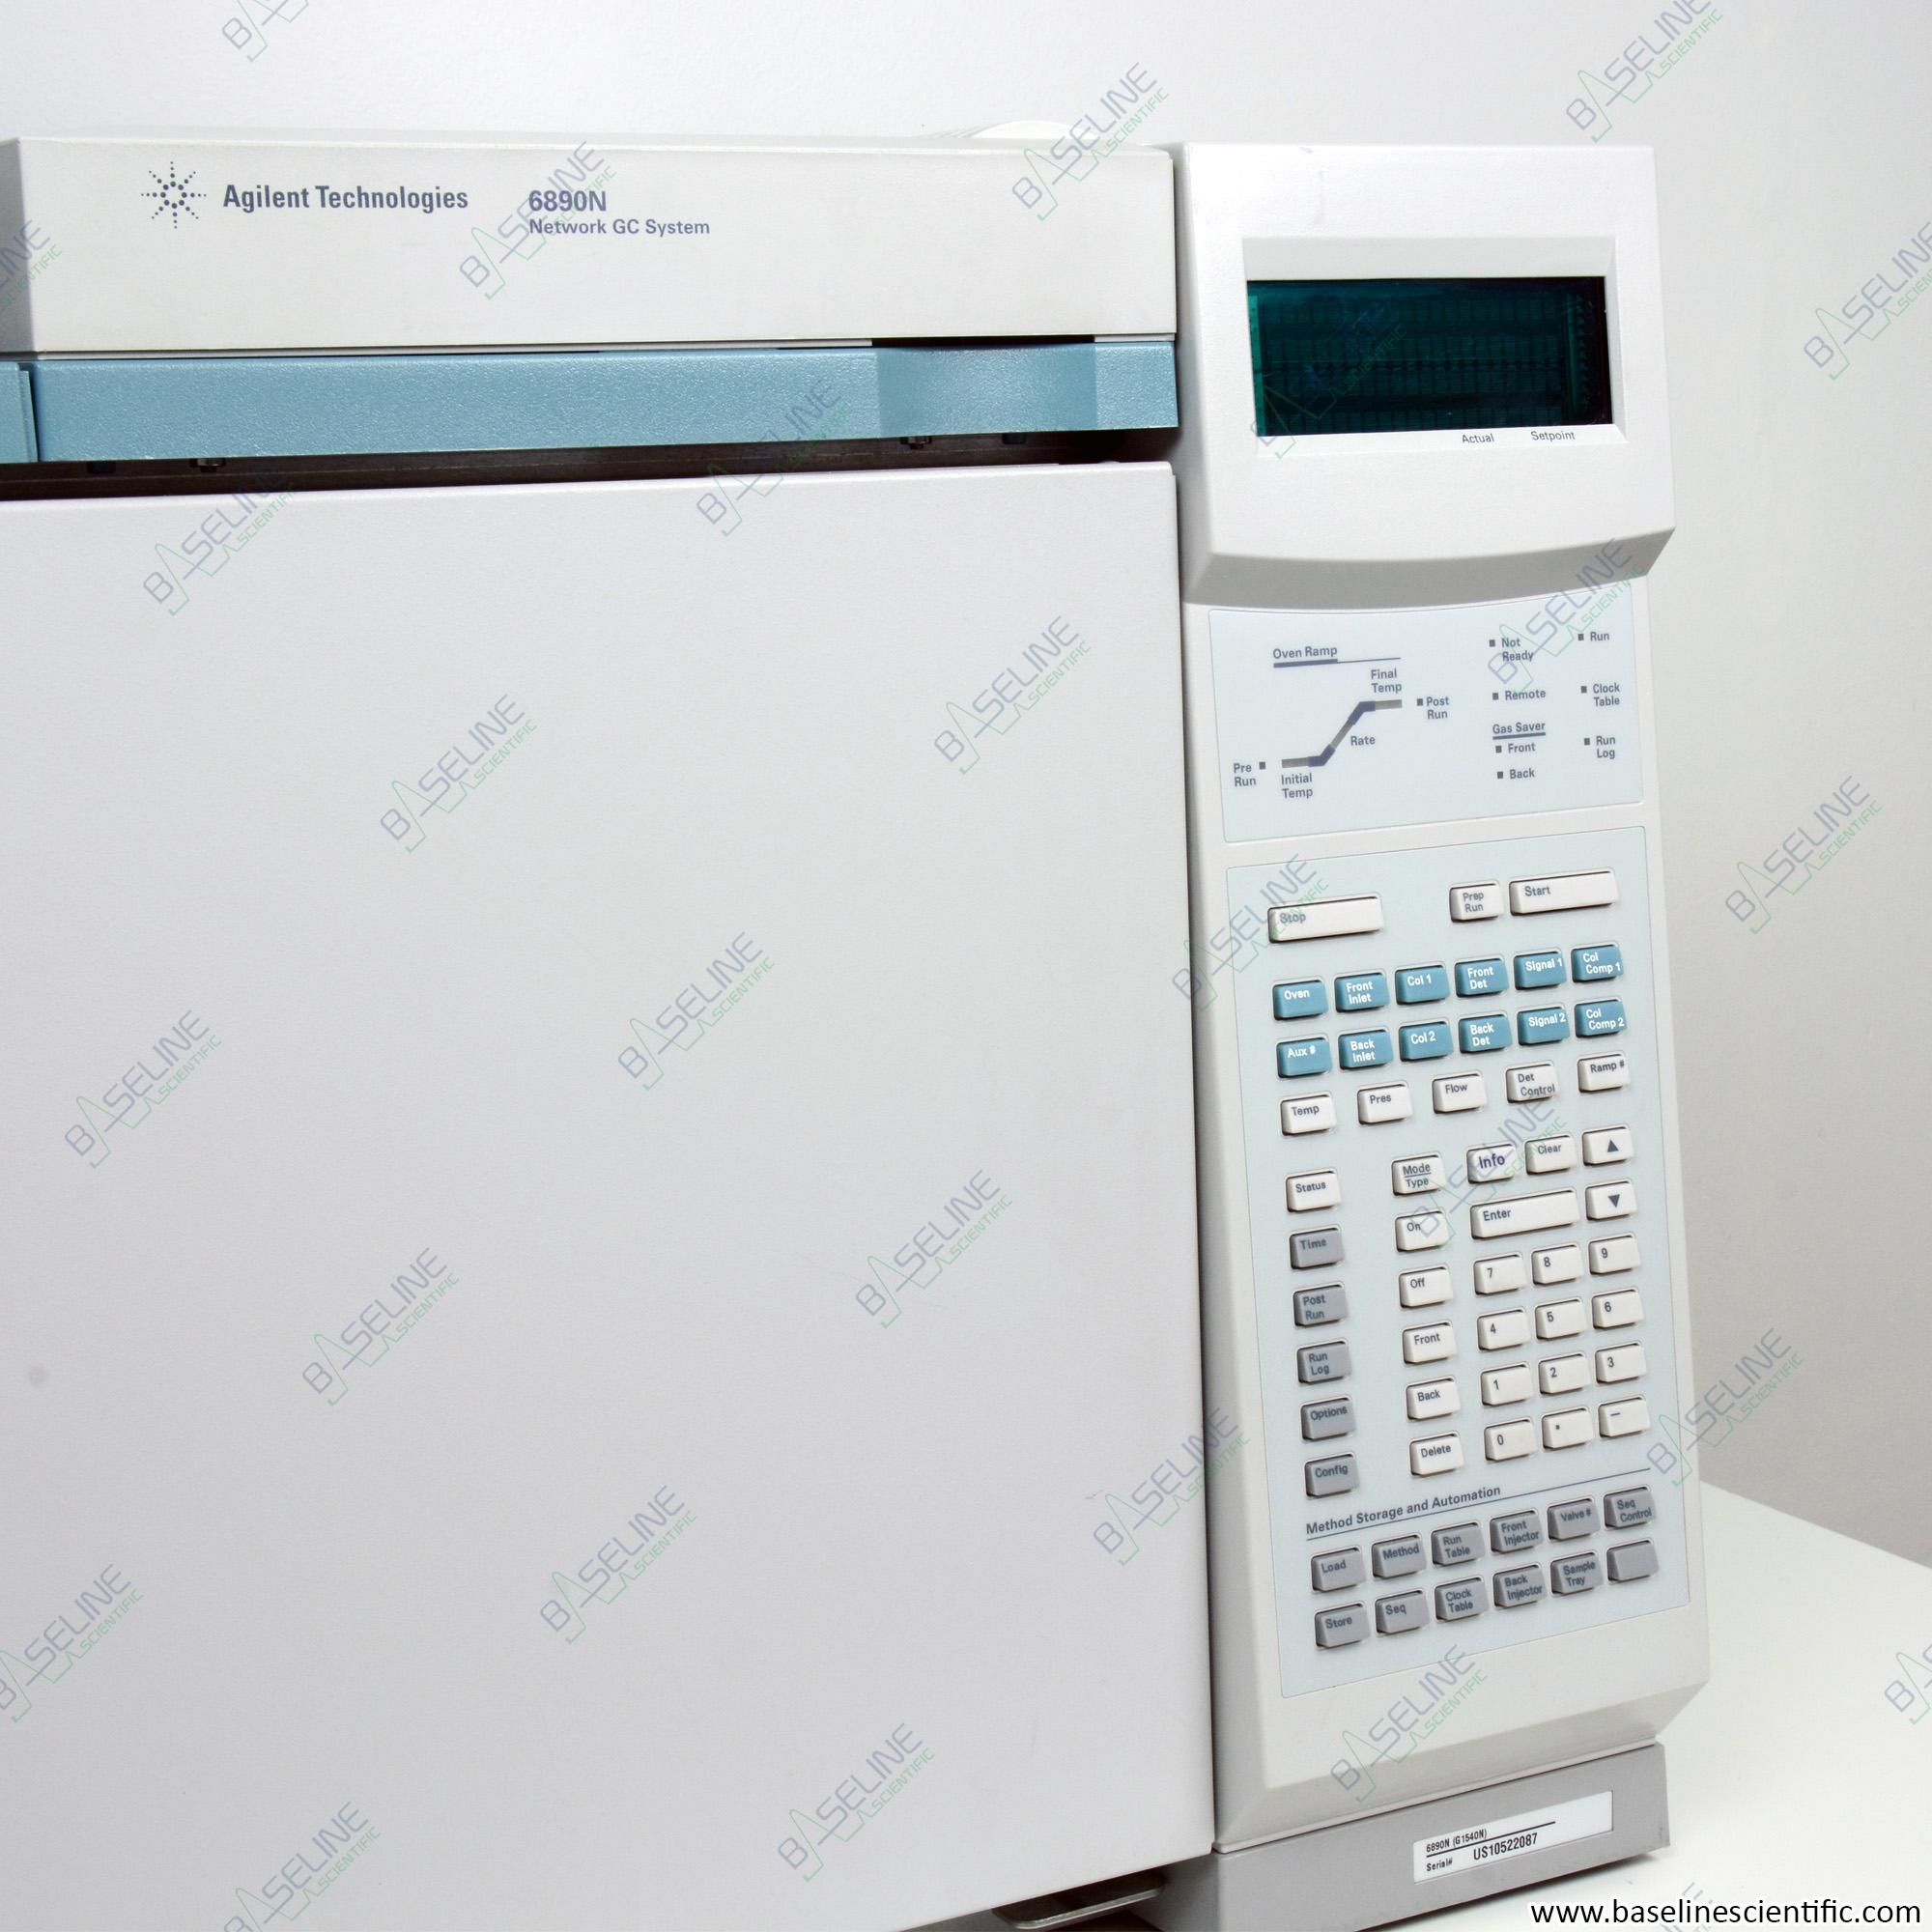 Refurbished Agilent 6890N GC and 5973N MSD and 7683 Autosampler with ONE YEAR WARRANTY